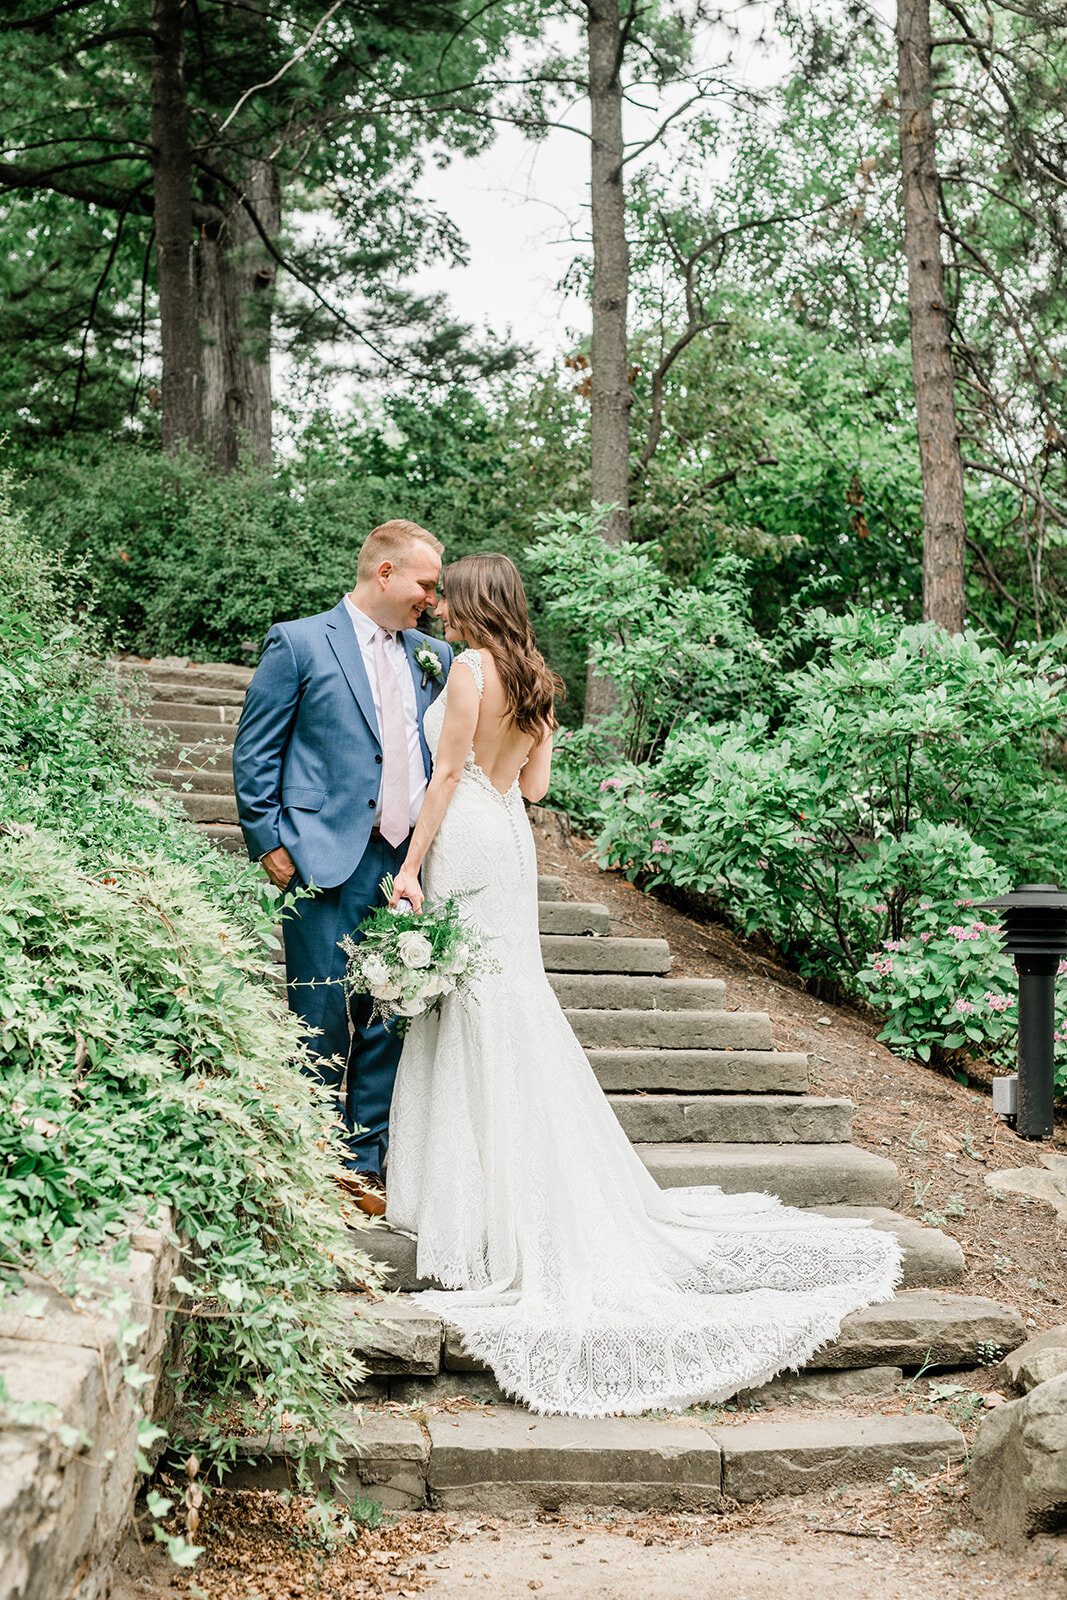 01-Cleveland-Botanical-Garden-Wedding-Cleveland-Wedding-Photographer-Balsam-and-Blush_36